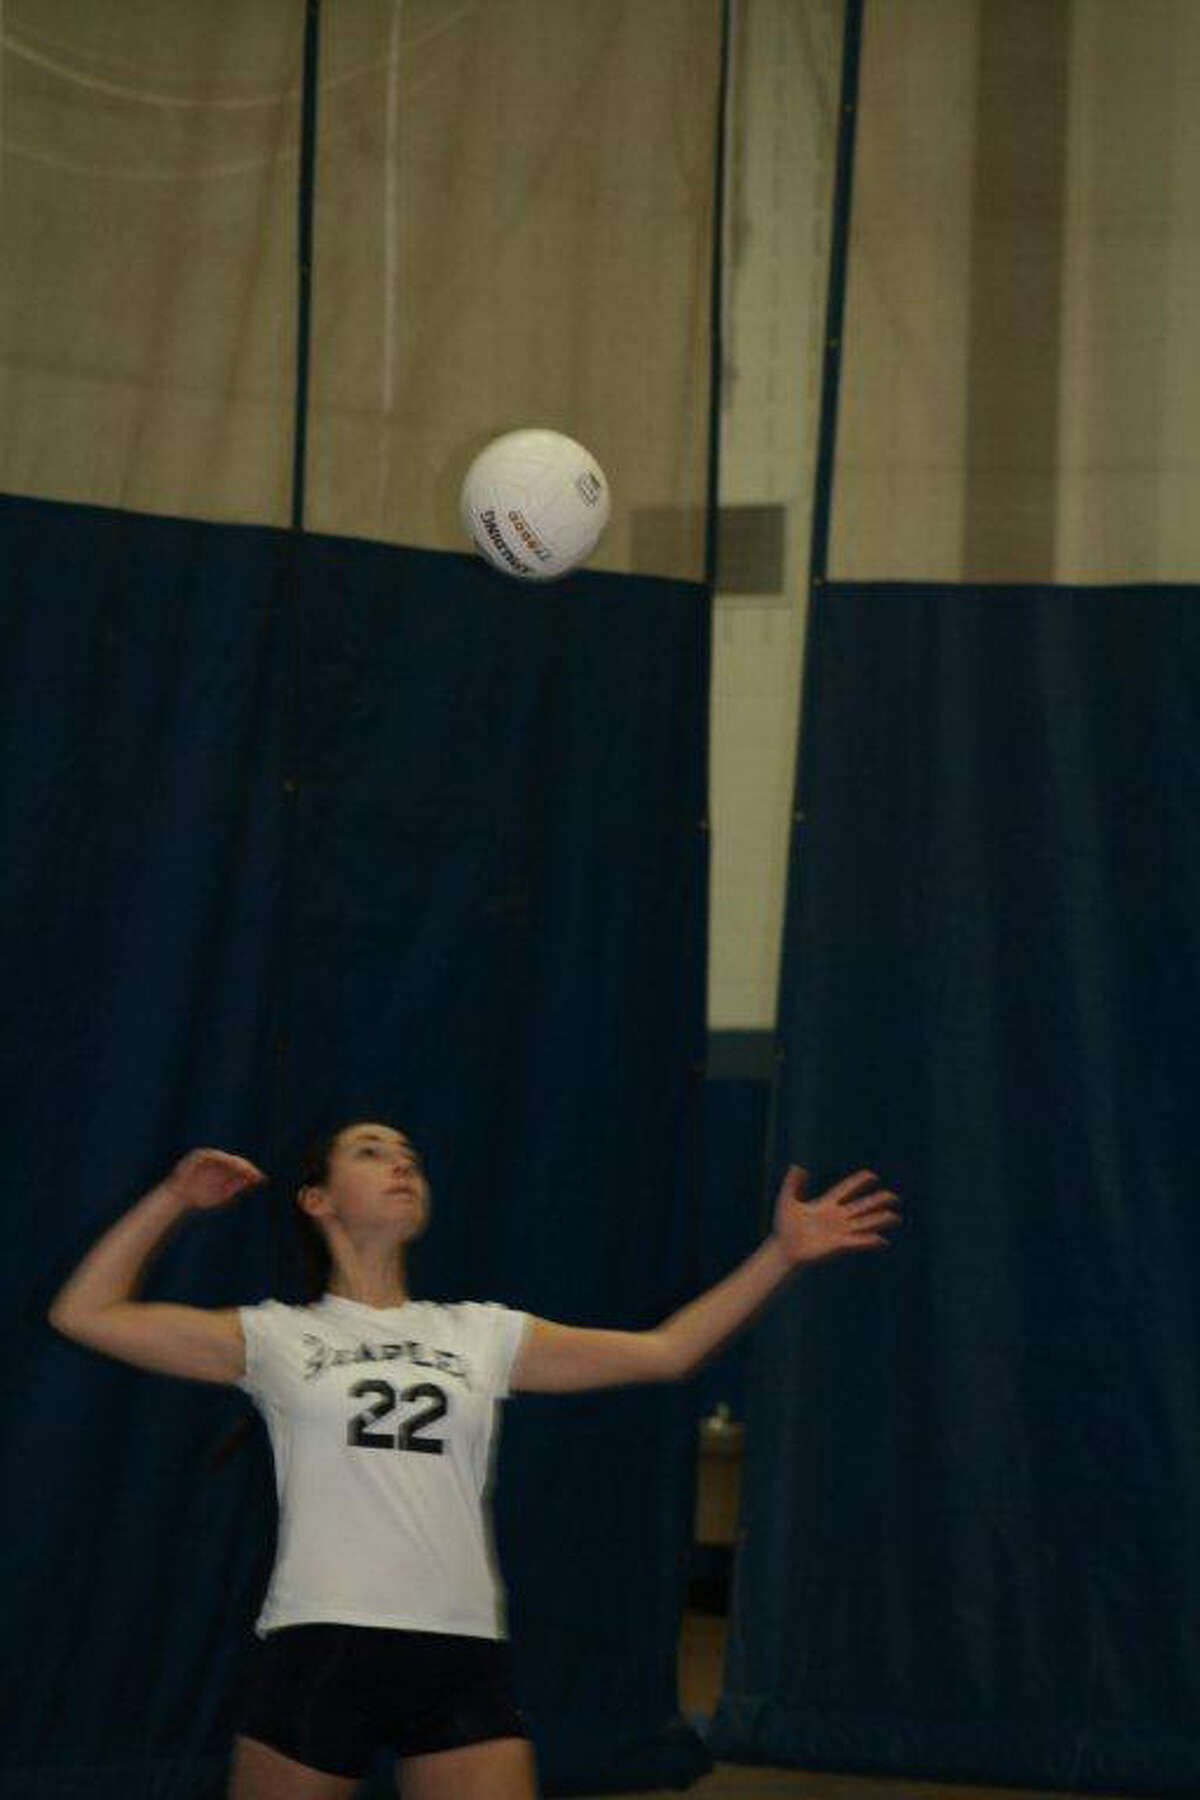 Staples senior tri-captain Dana Rappaport served two points to tie the second game, 24-24, which Staples won 30-28 at Glastonbury on Thursday. The Lady Wreckers won 3-1 at Glastonbury to advance to the Class LL quarterfinals.